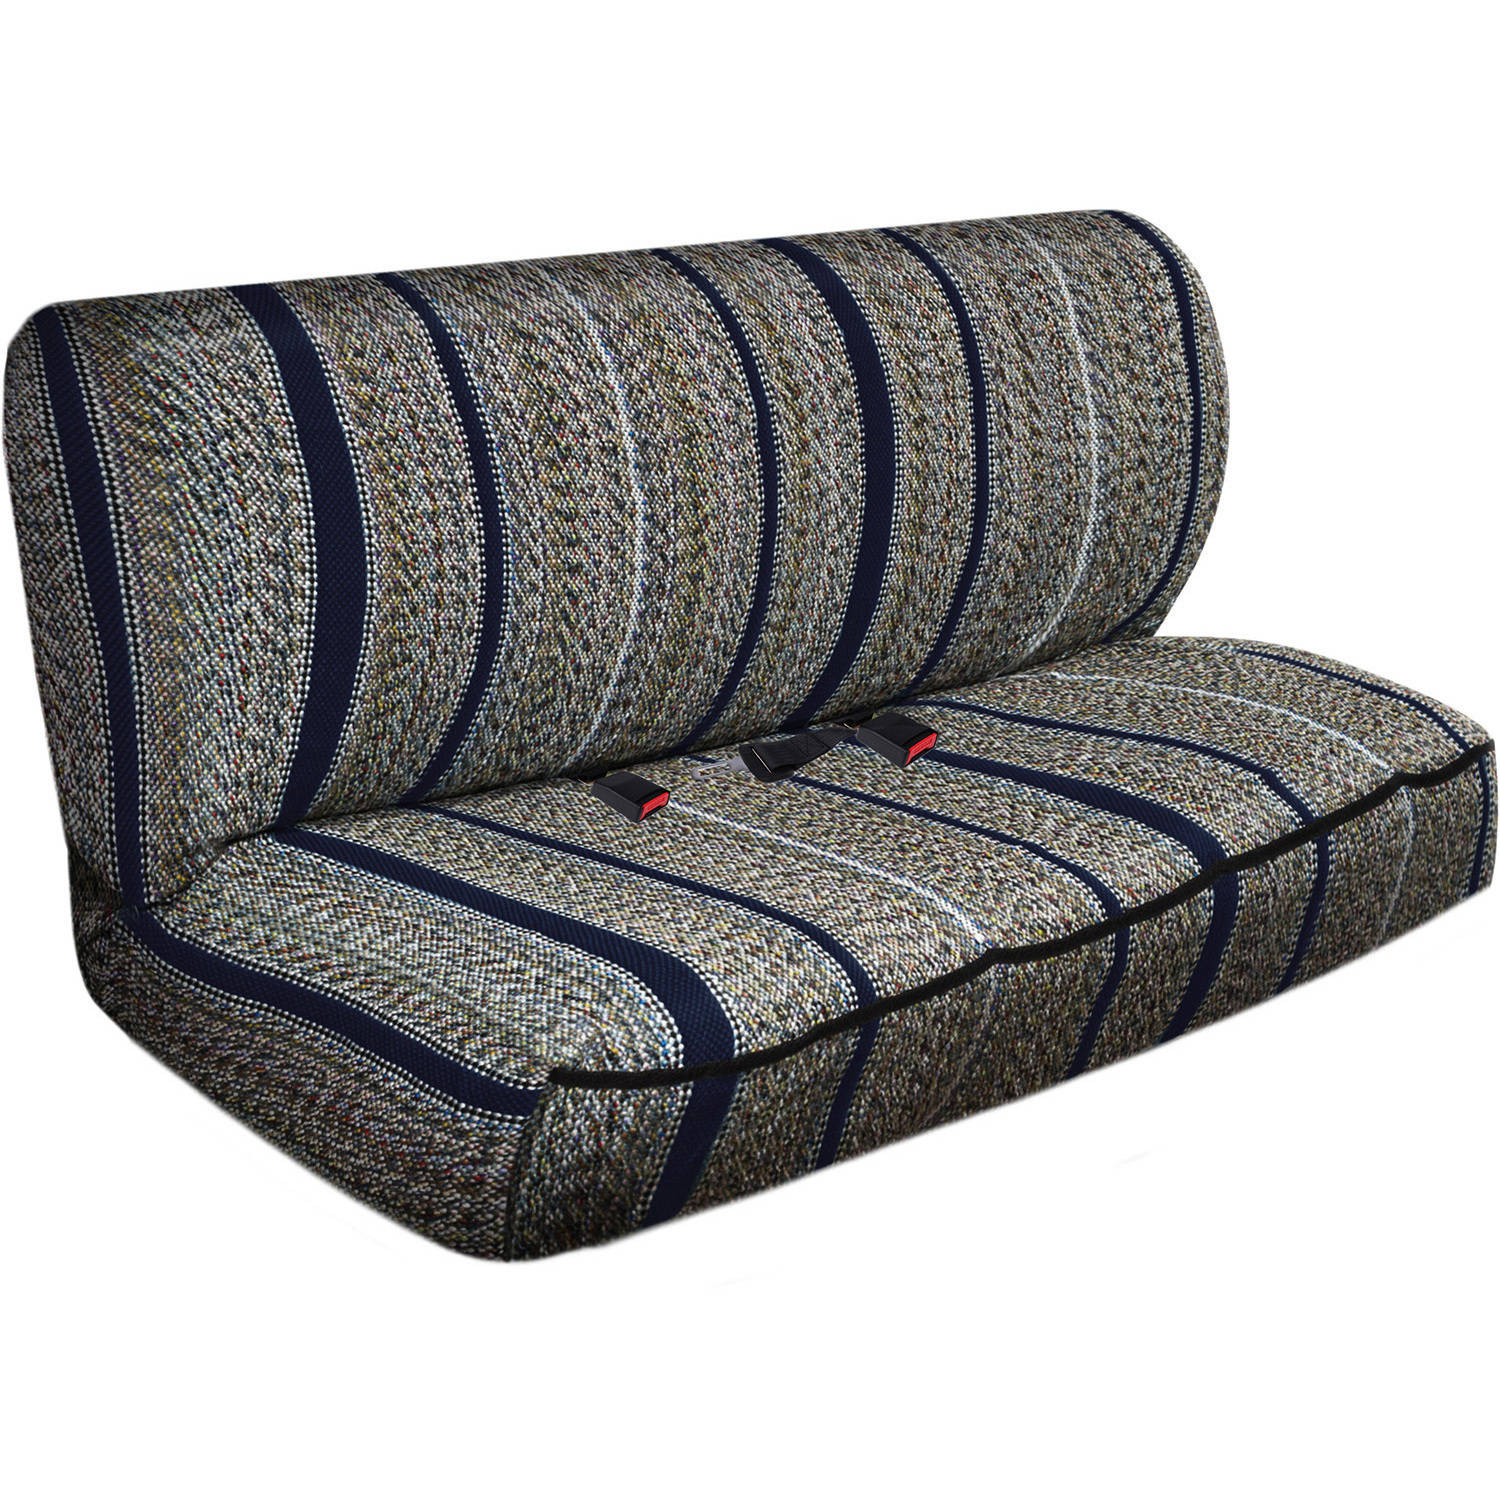 OxGord 2-Piece Full Size Heavy Duty Saddle Blanket Bench Seat Covers, Navy Blue